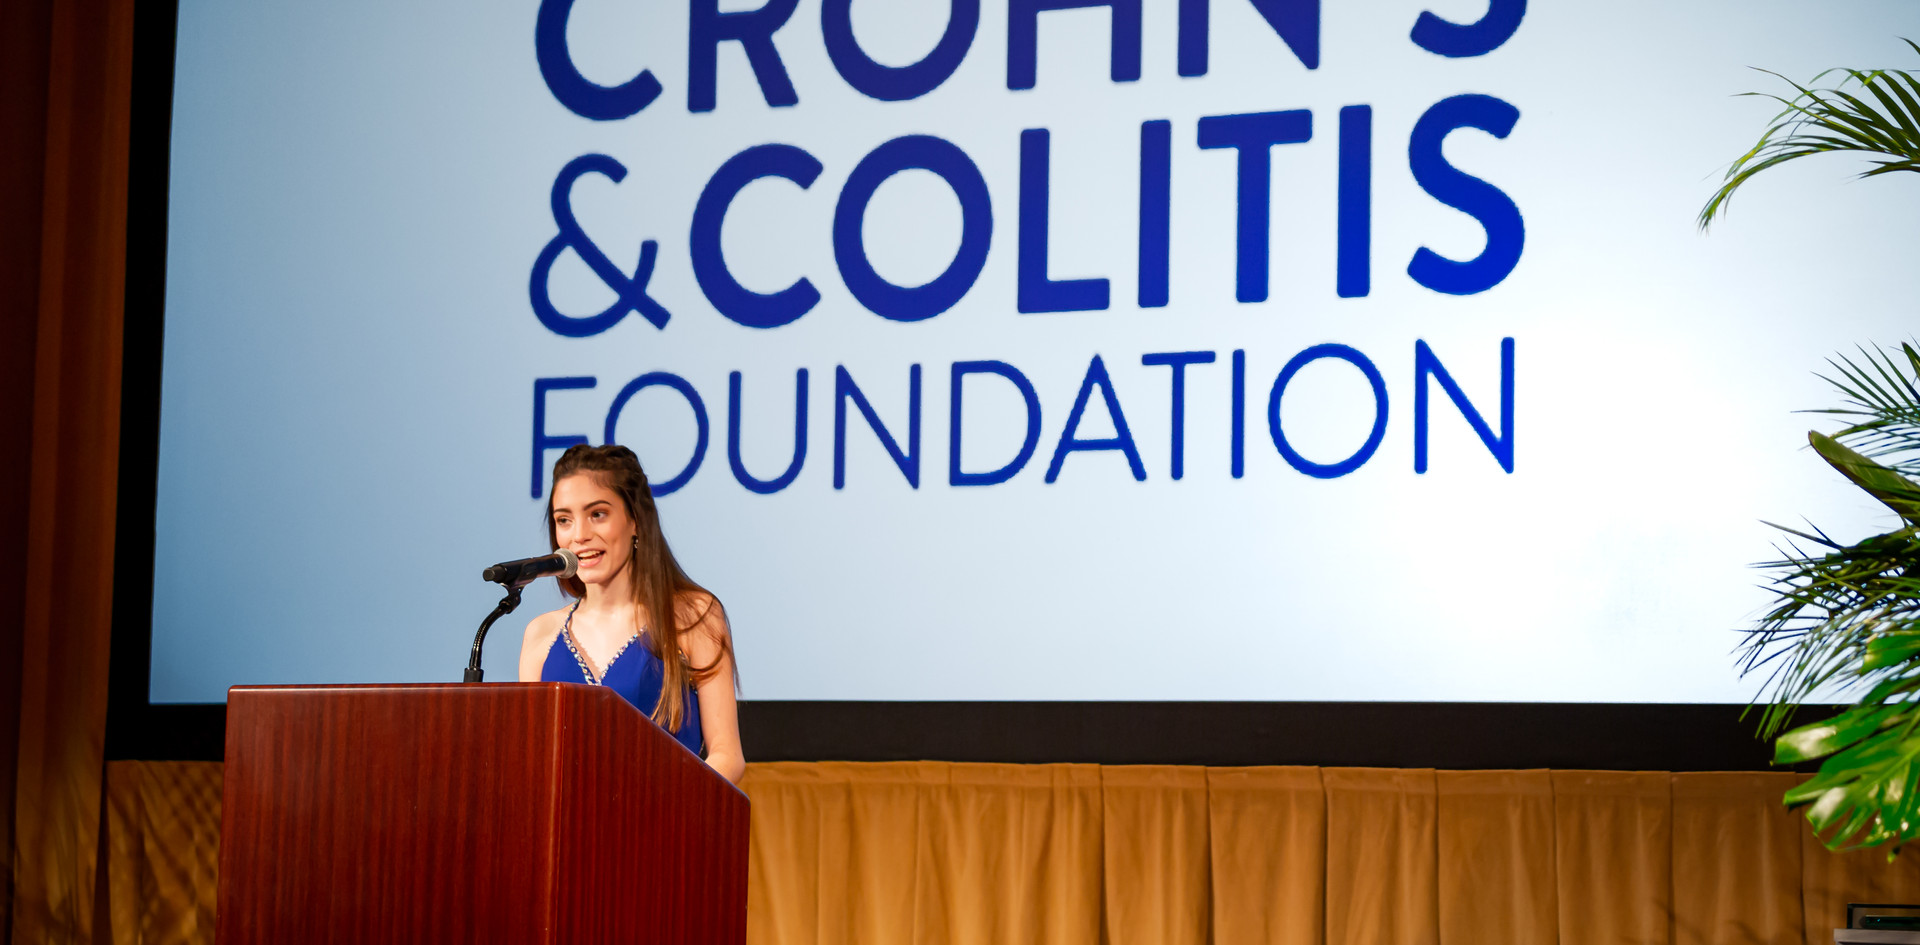 Crohns Colitis Foundation Gala